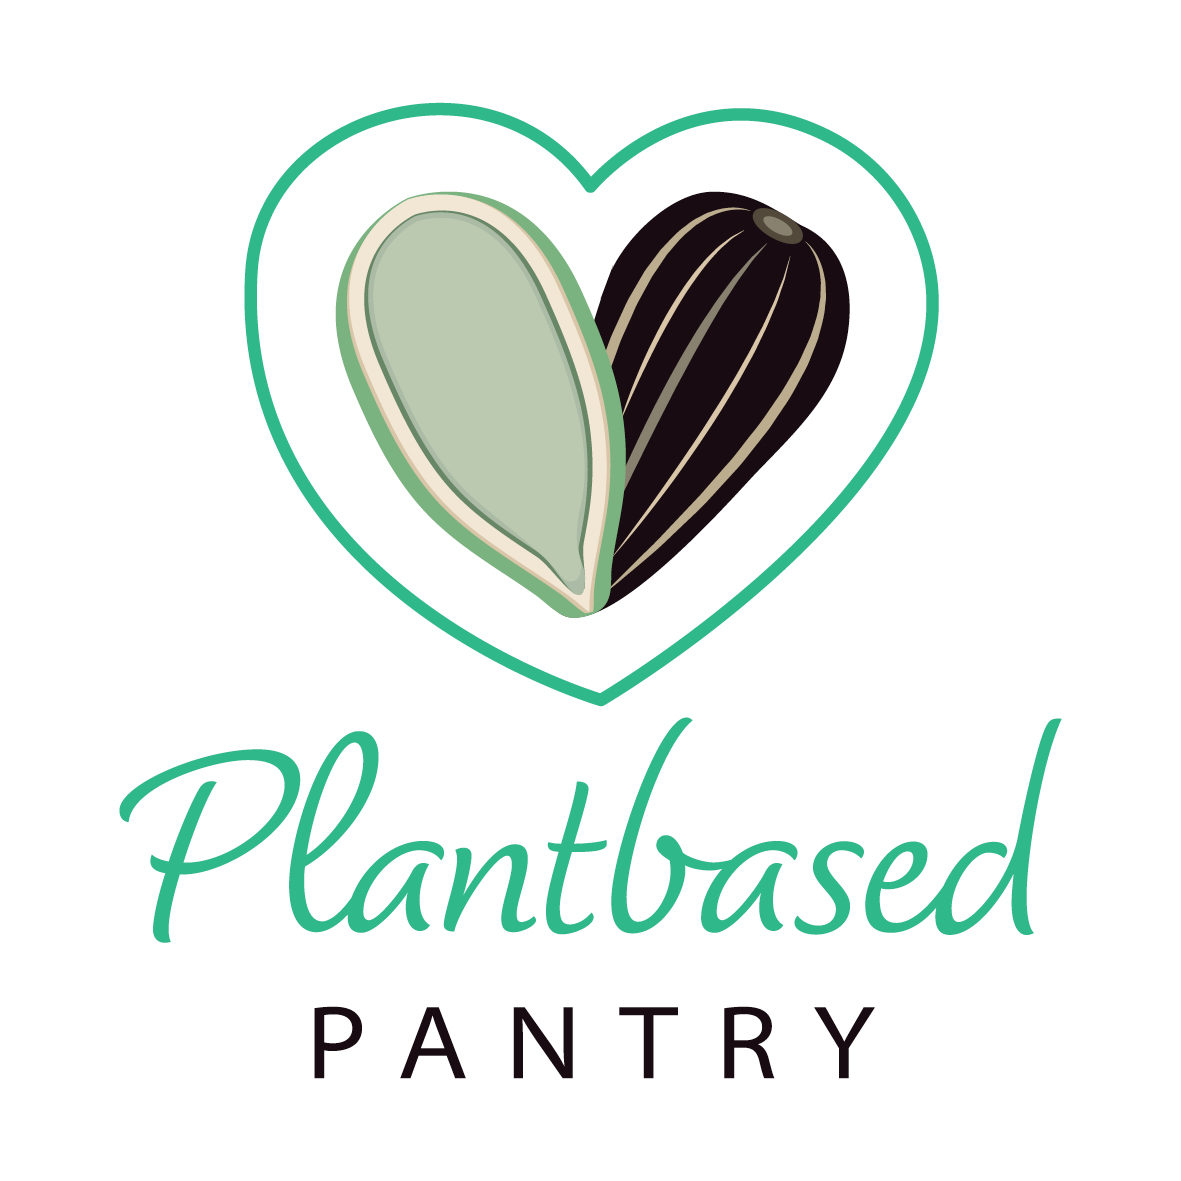 Plantbased Pantry